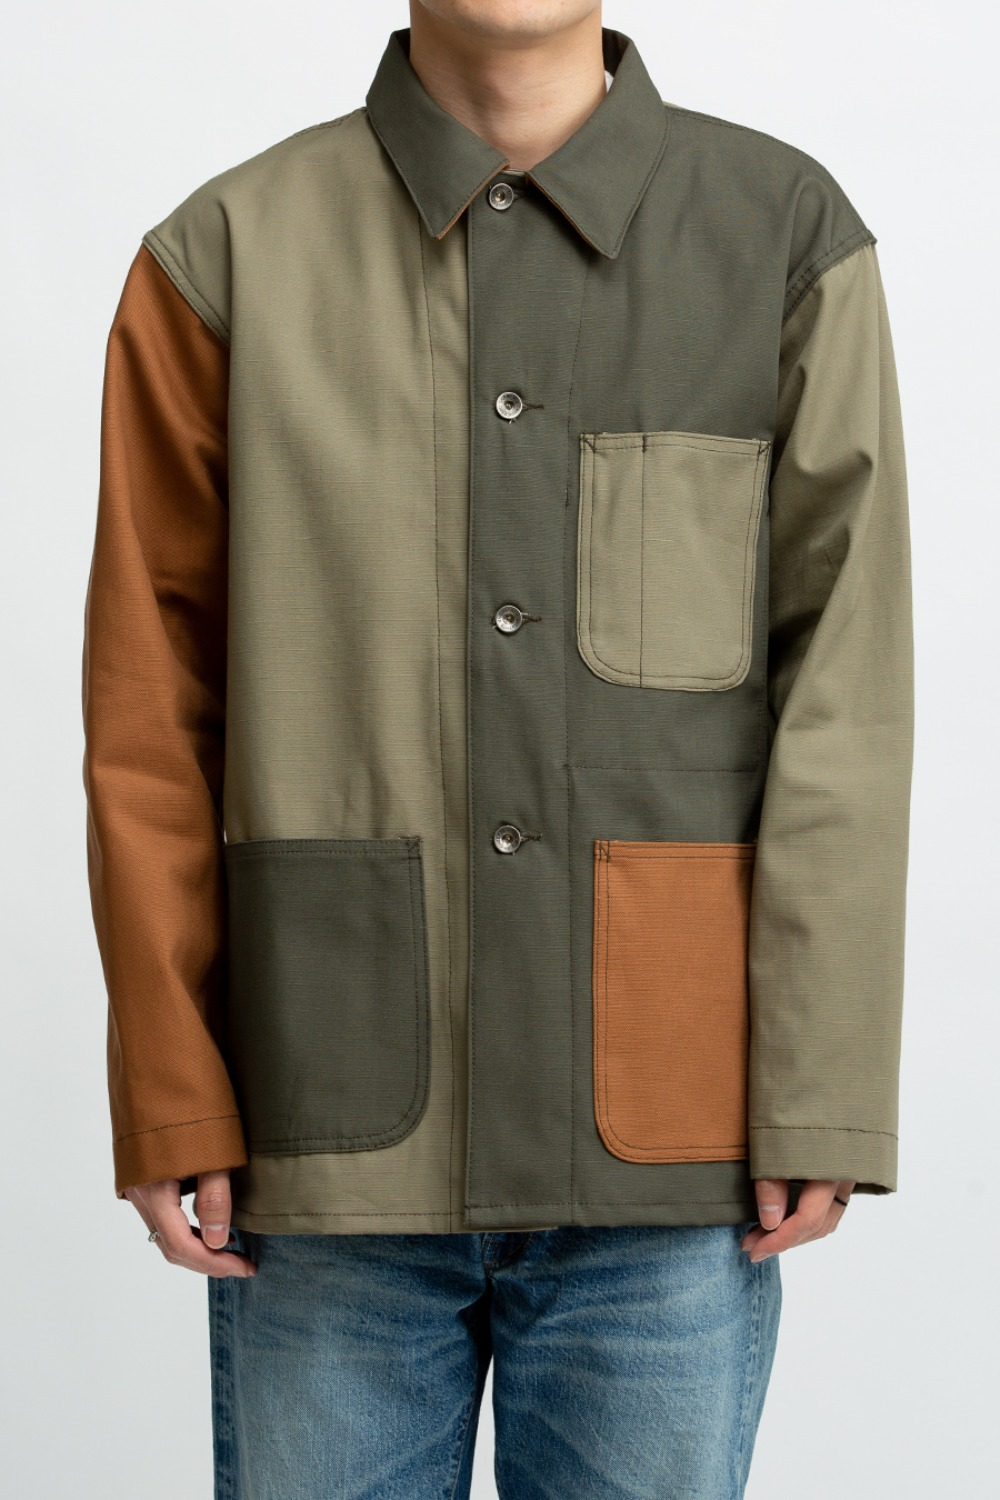 UTILITY JACKET COMBO OLIVE COTTON RIPSTOP